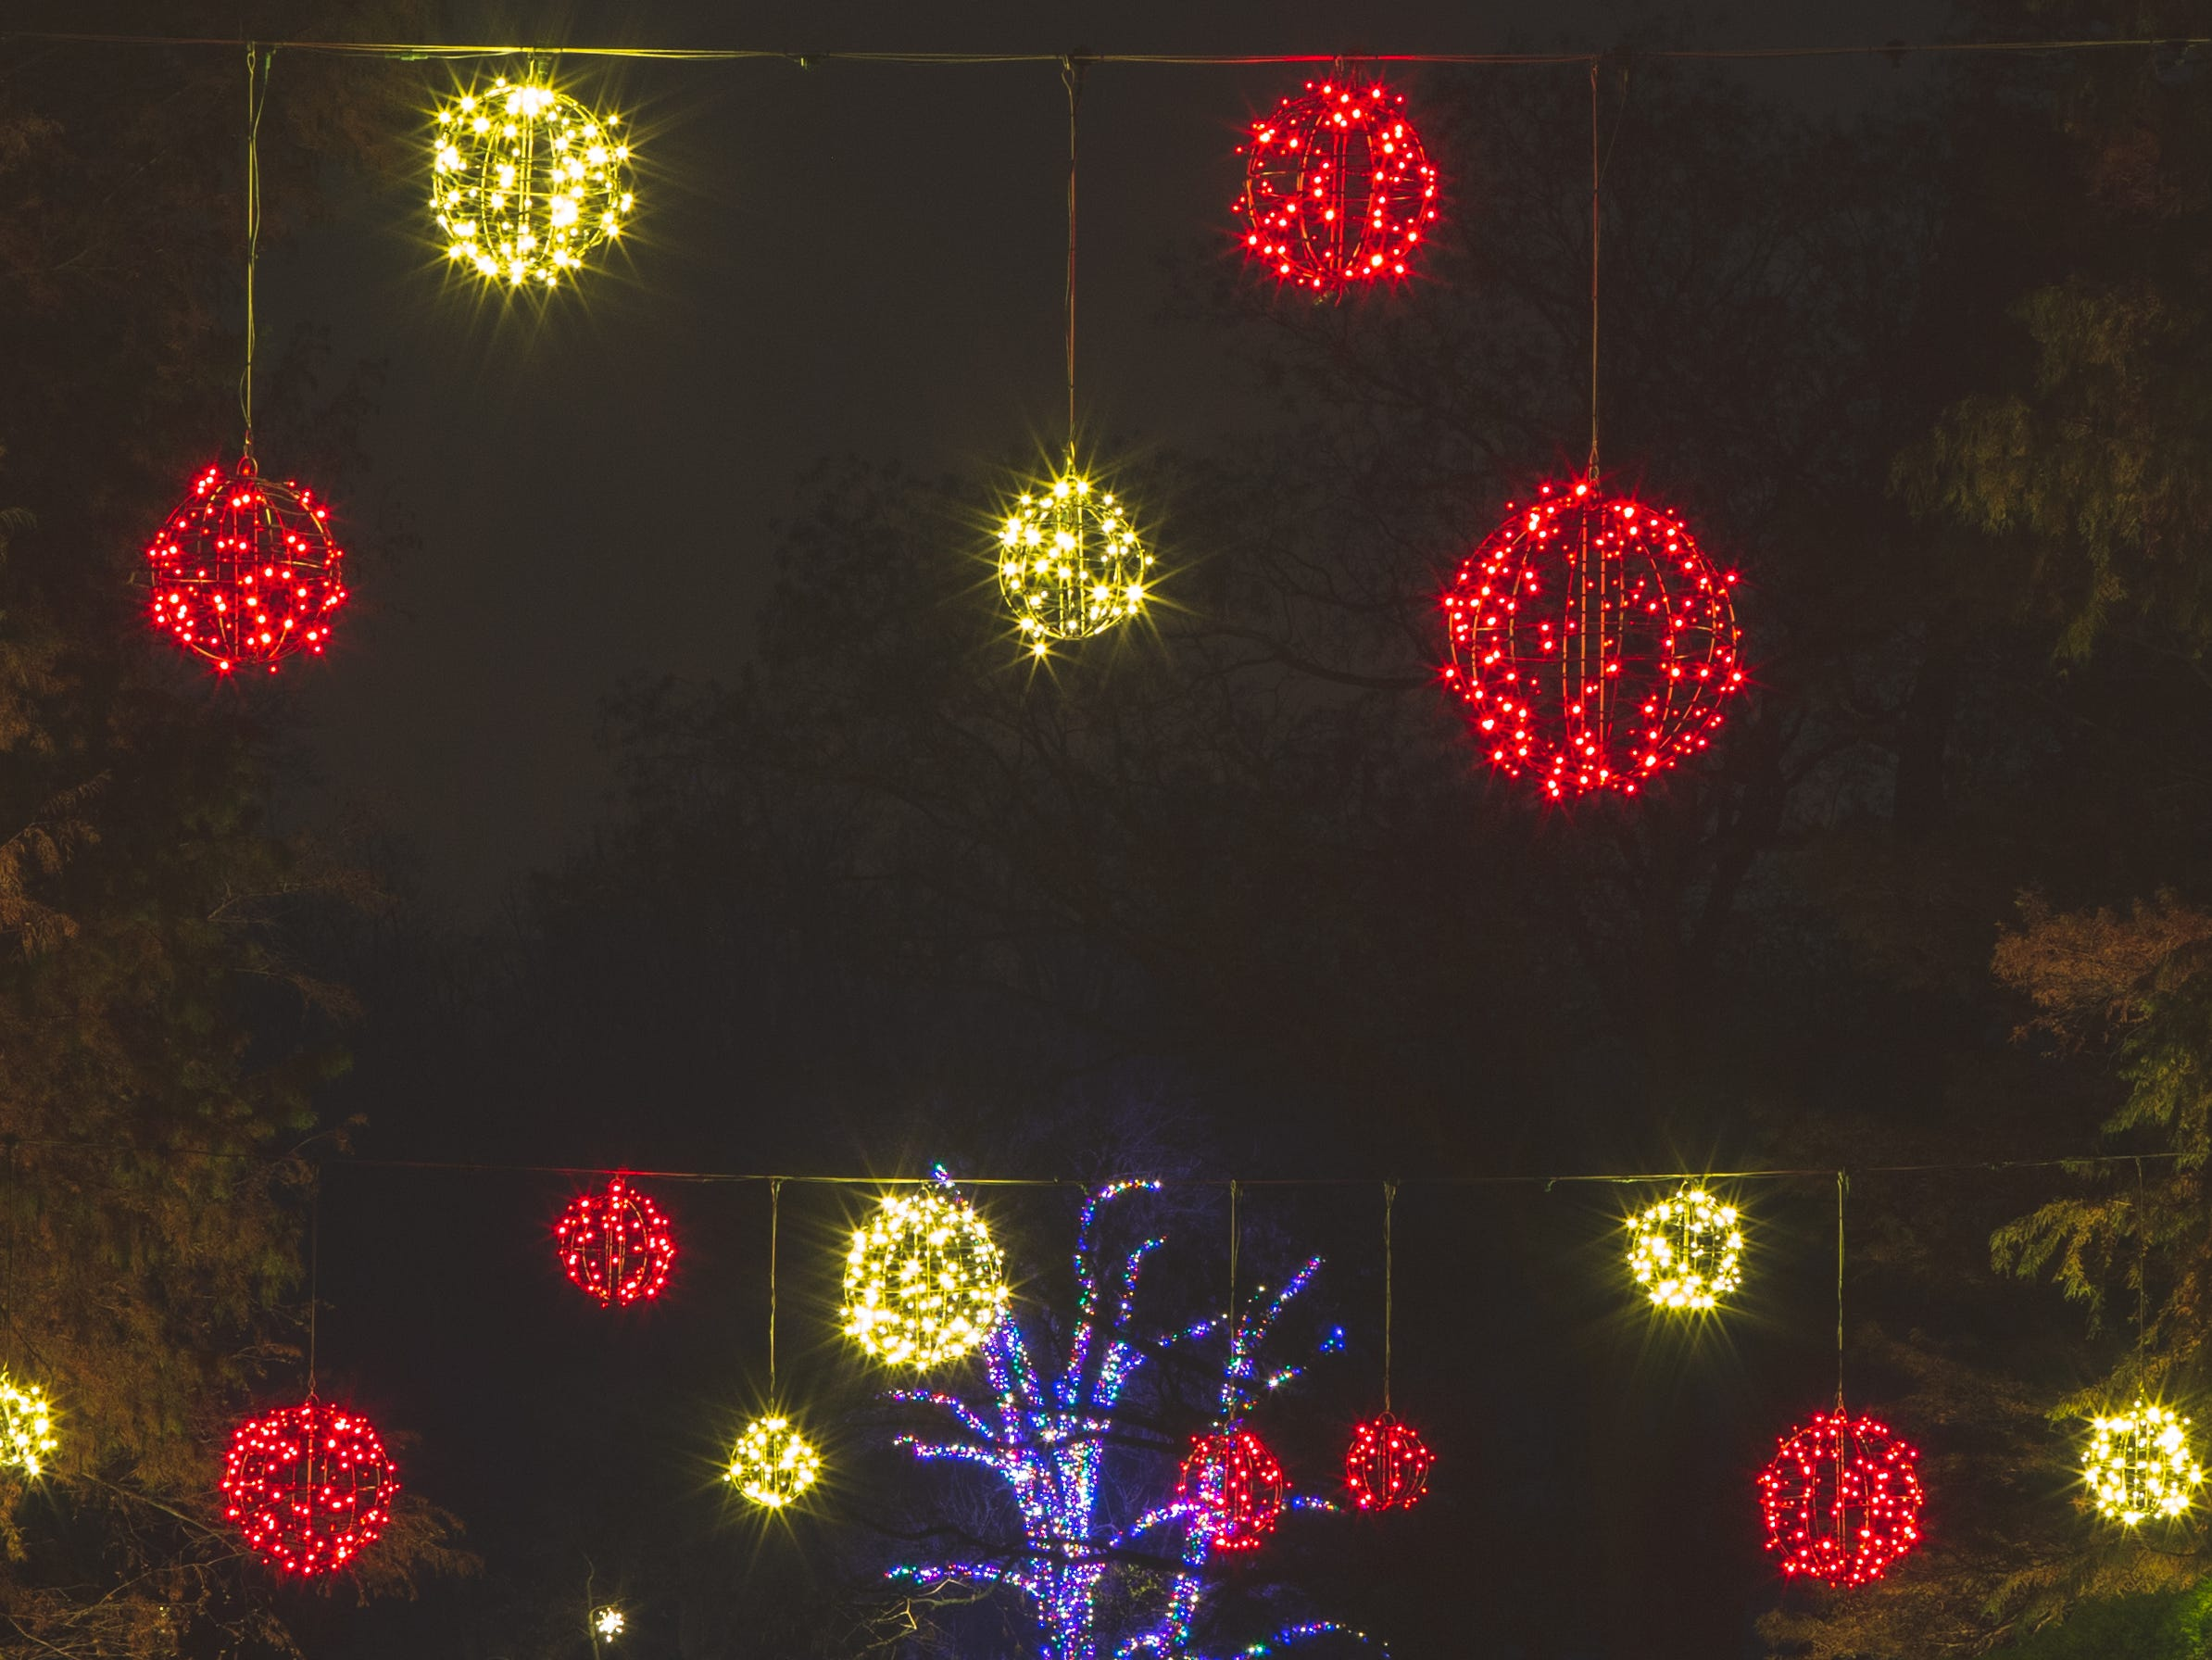 One hundred red and white orbs float above the flower garden walk during A Longwood Christmas in 2018.